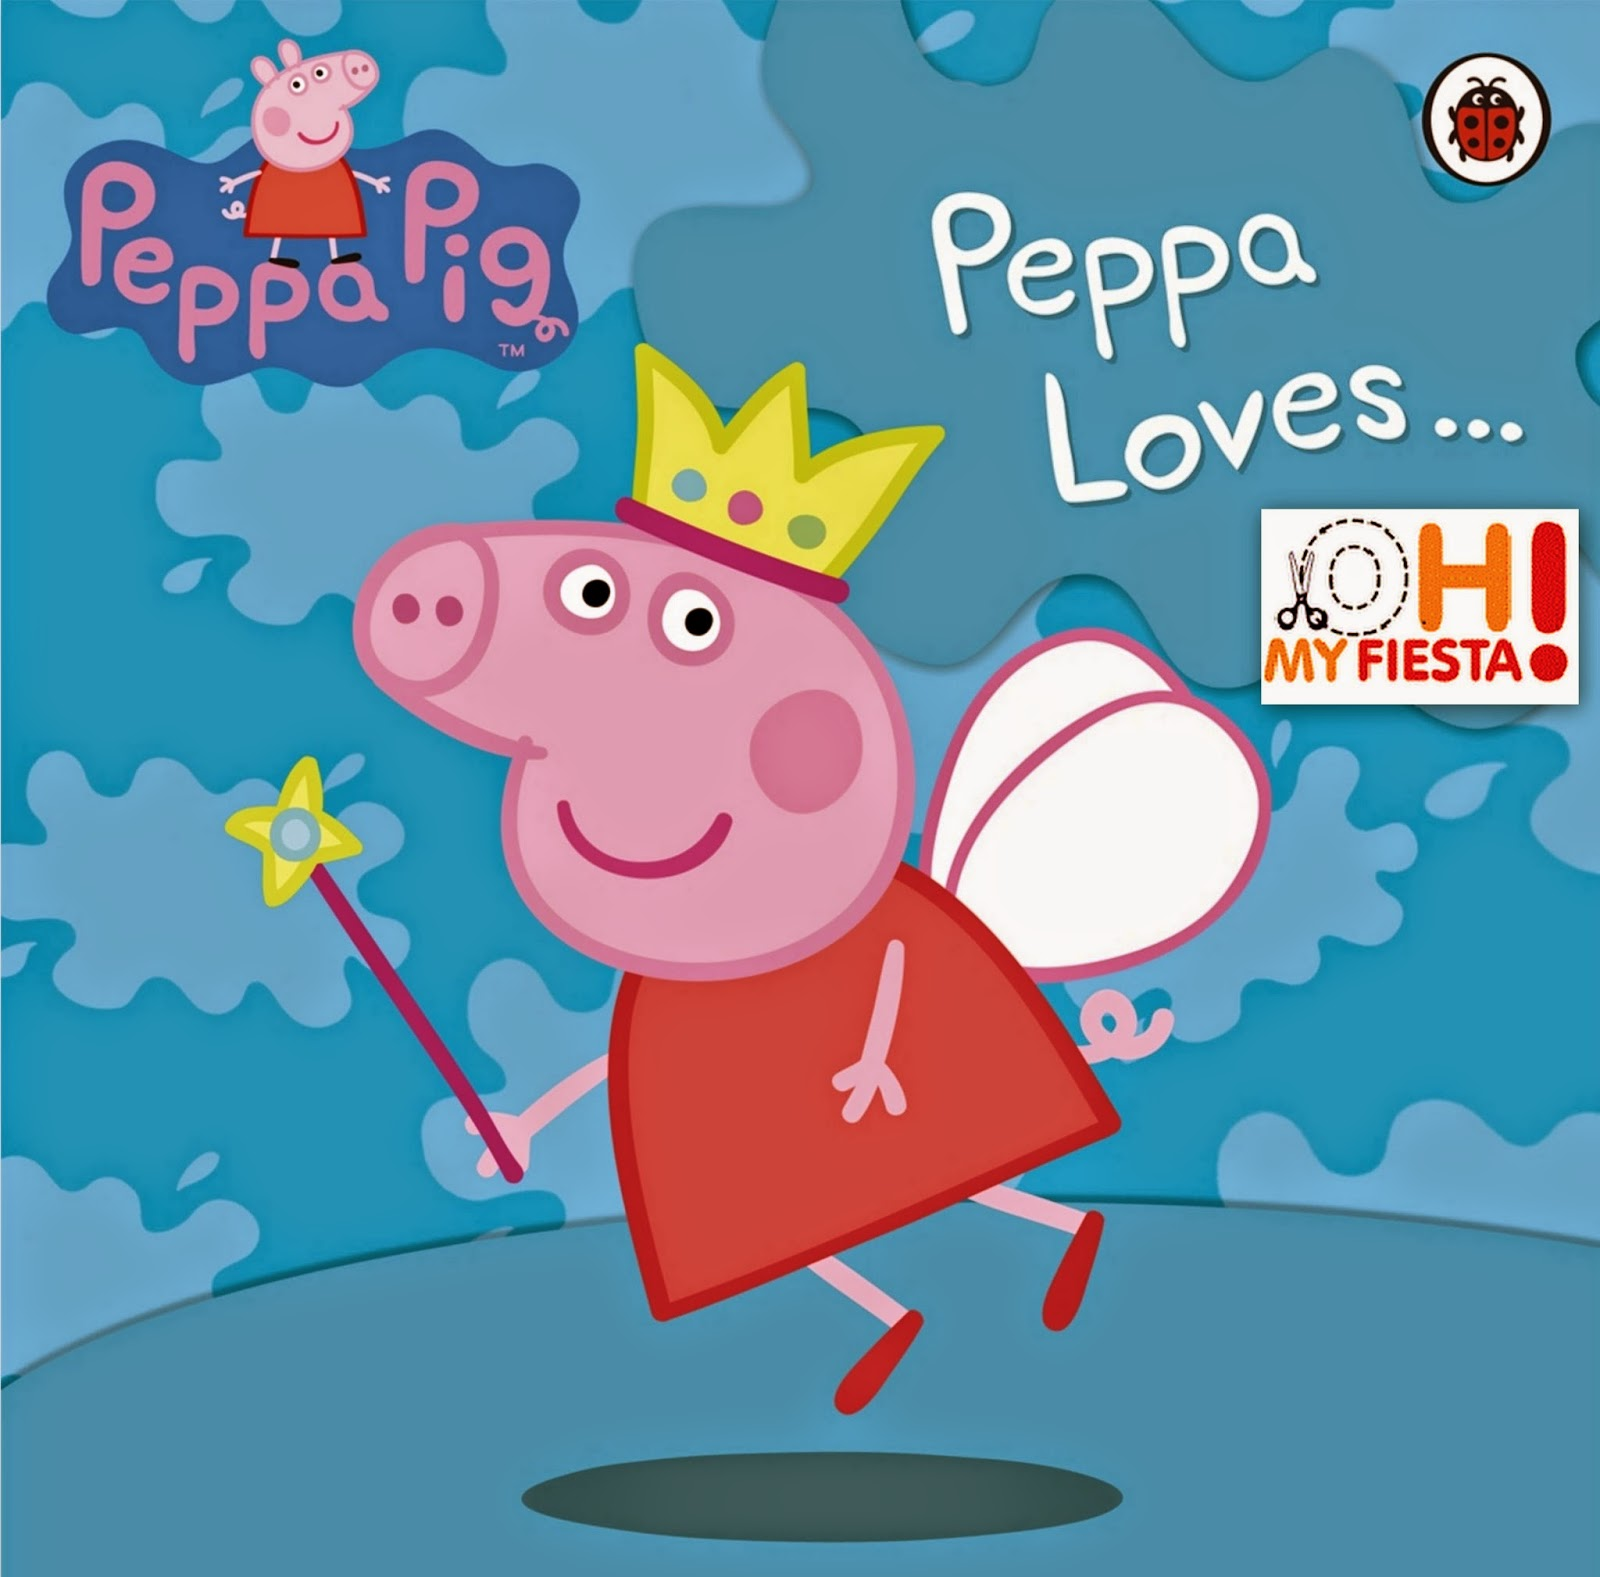 peppa pig free printable kit is it for parties is it free is